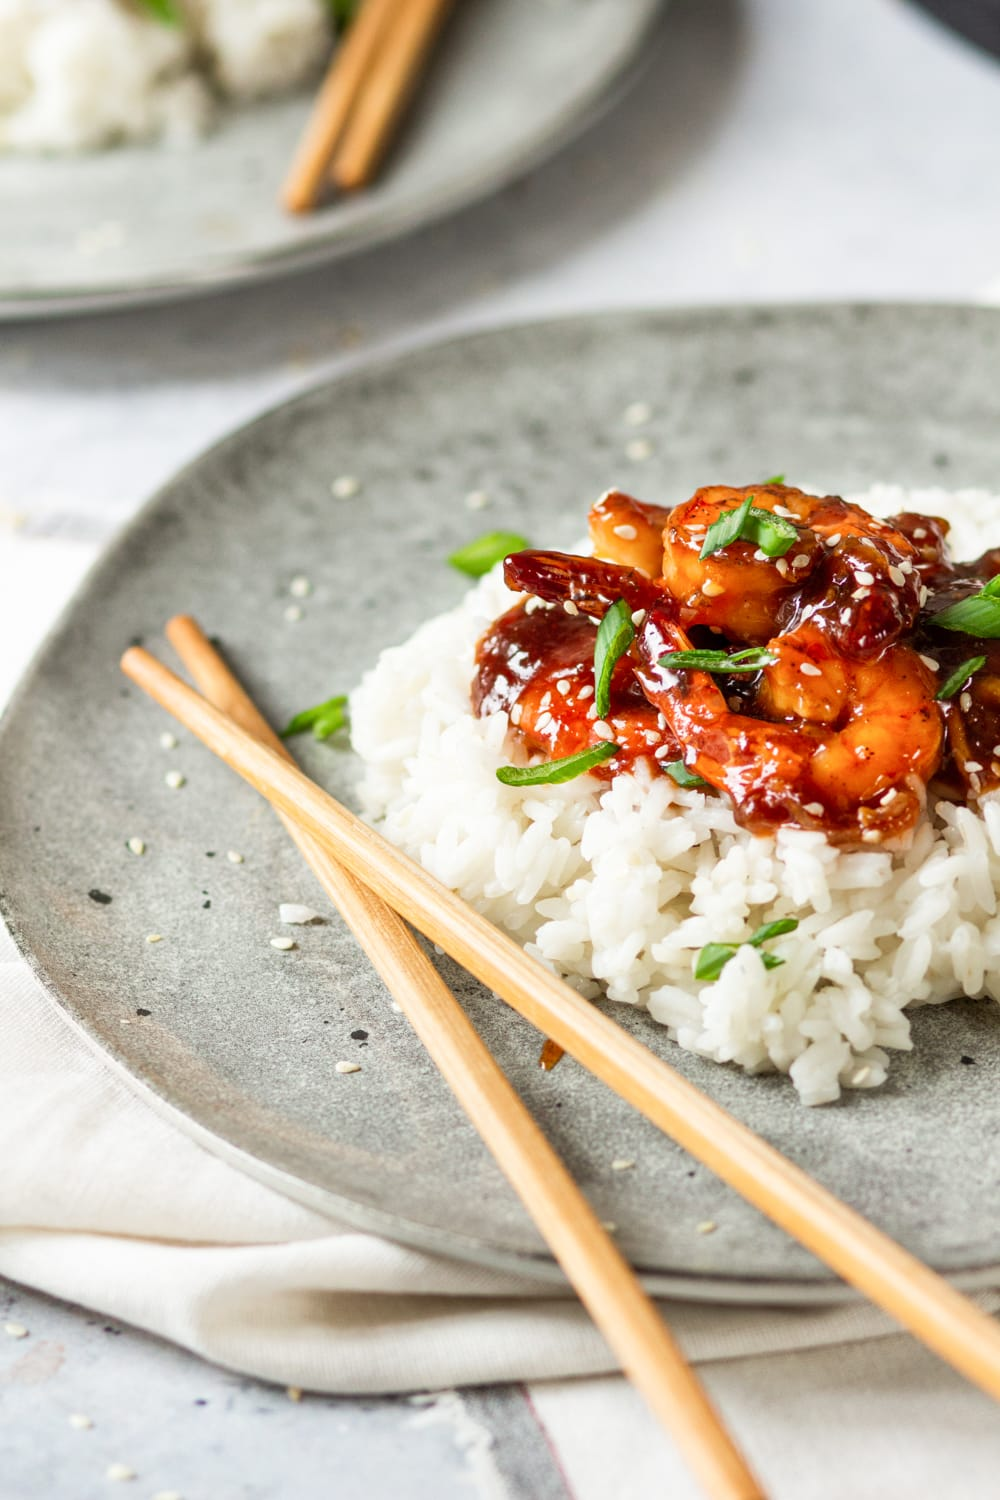 A few pieces of sweet and sour shrimp on a bed of white rice on a grey plate. There is a set of chopsticks crossed over one another to the left of the rice. The plate is on a white tablecloth.